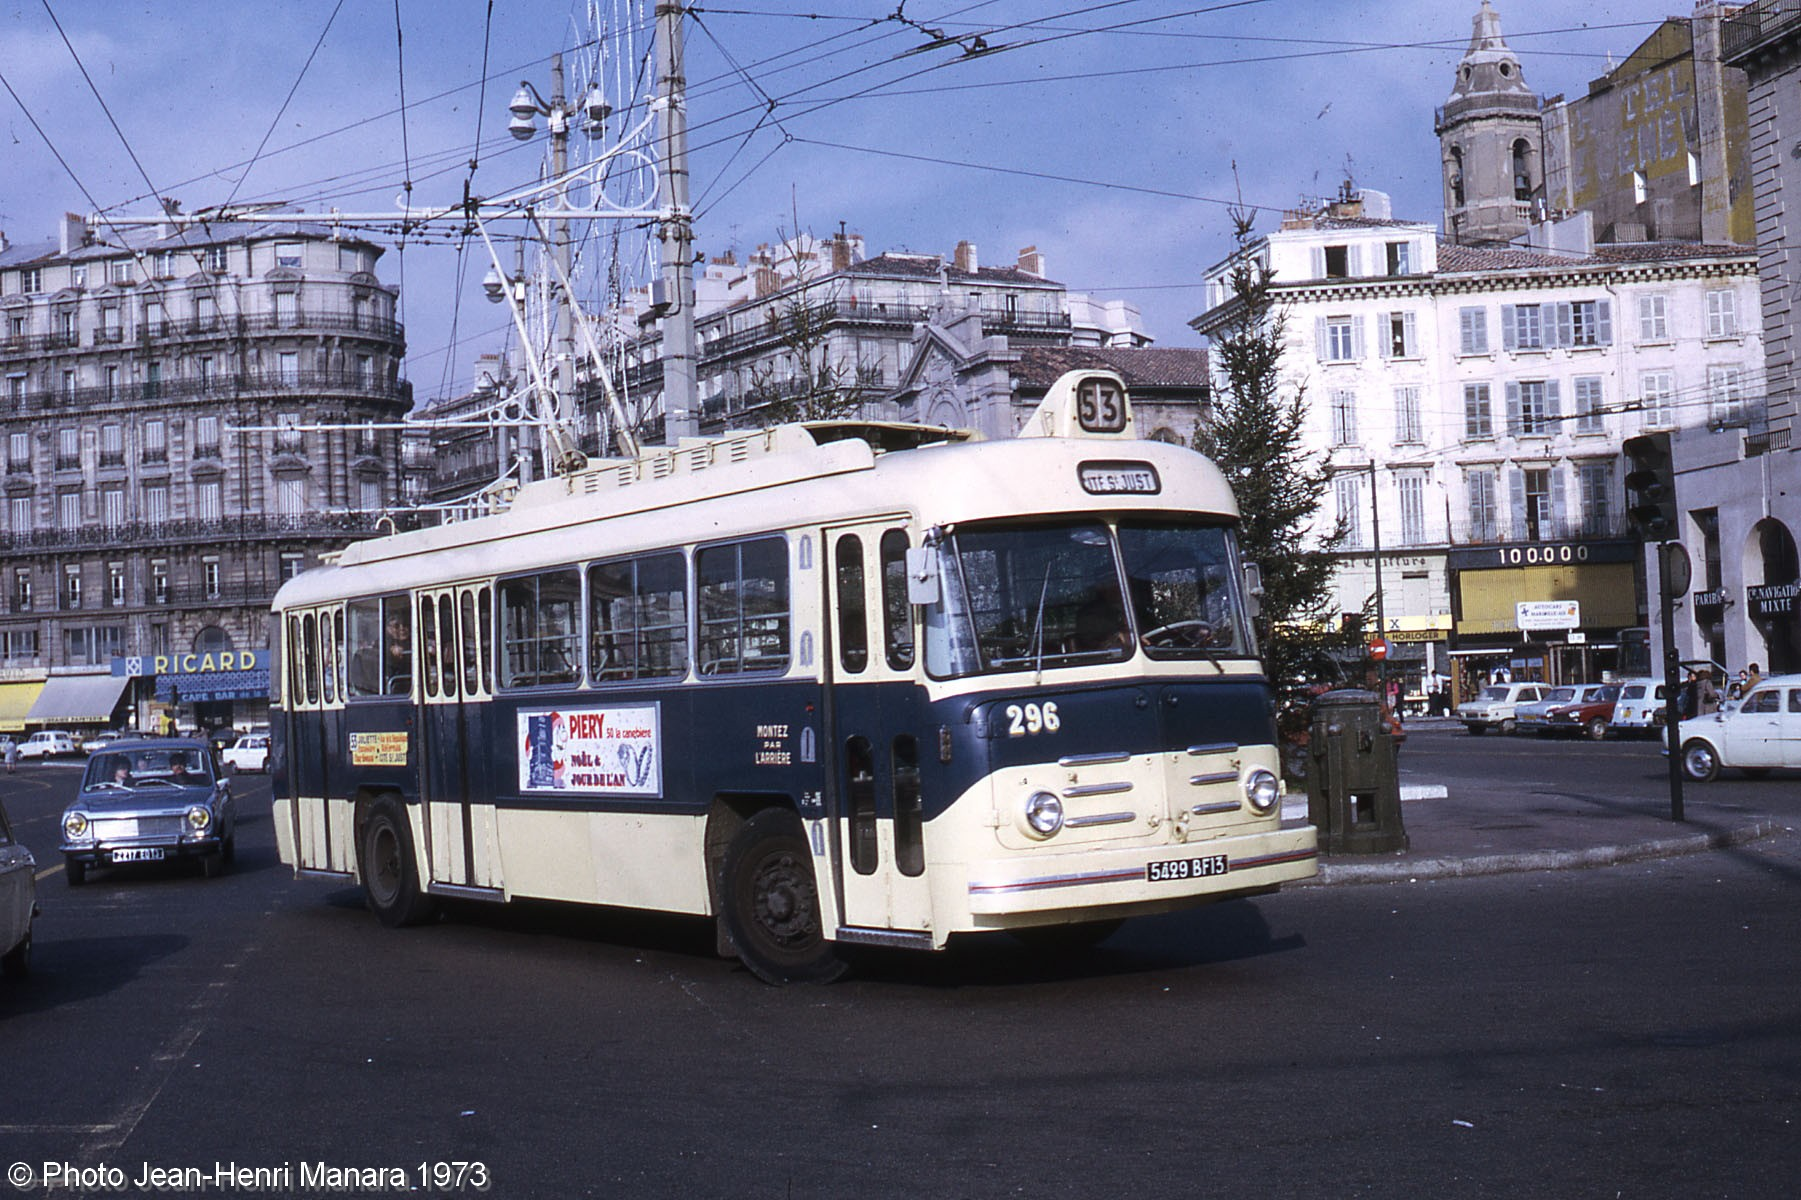 Les trolleybus de marseille for Bus salon de provence aix en provence